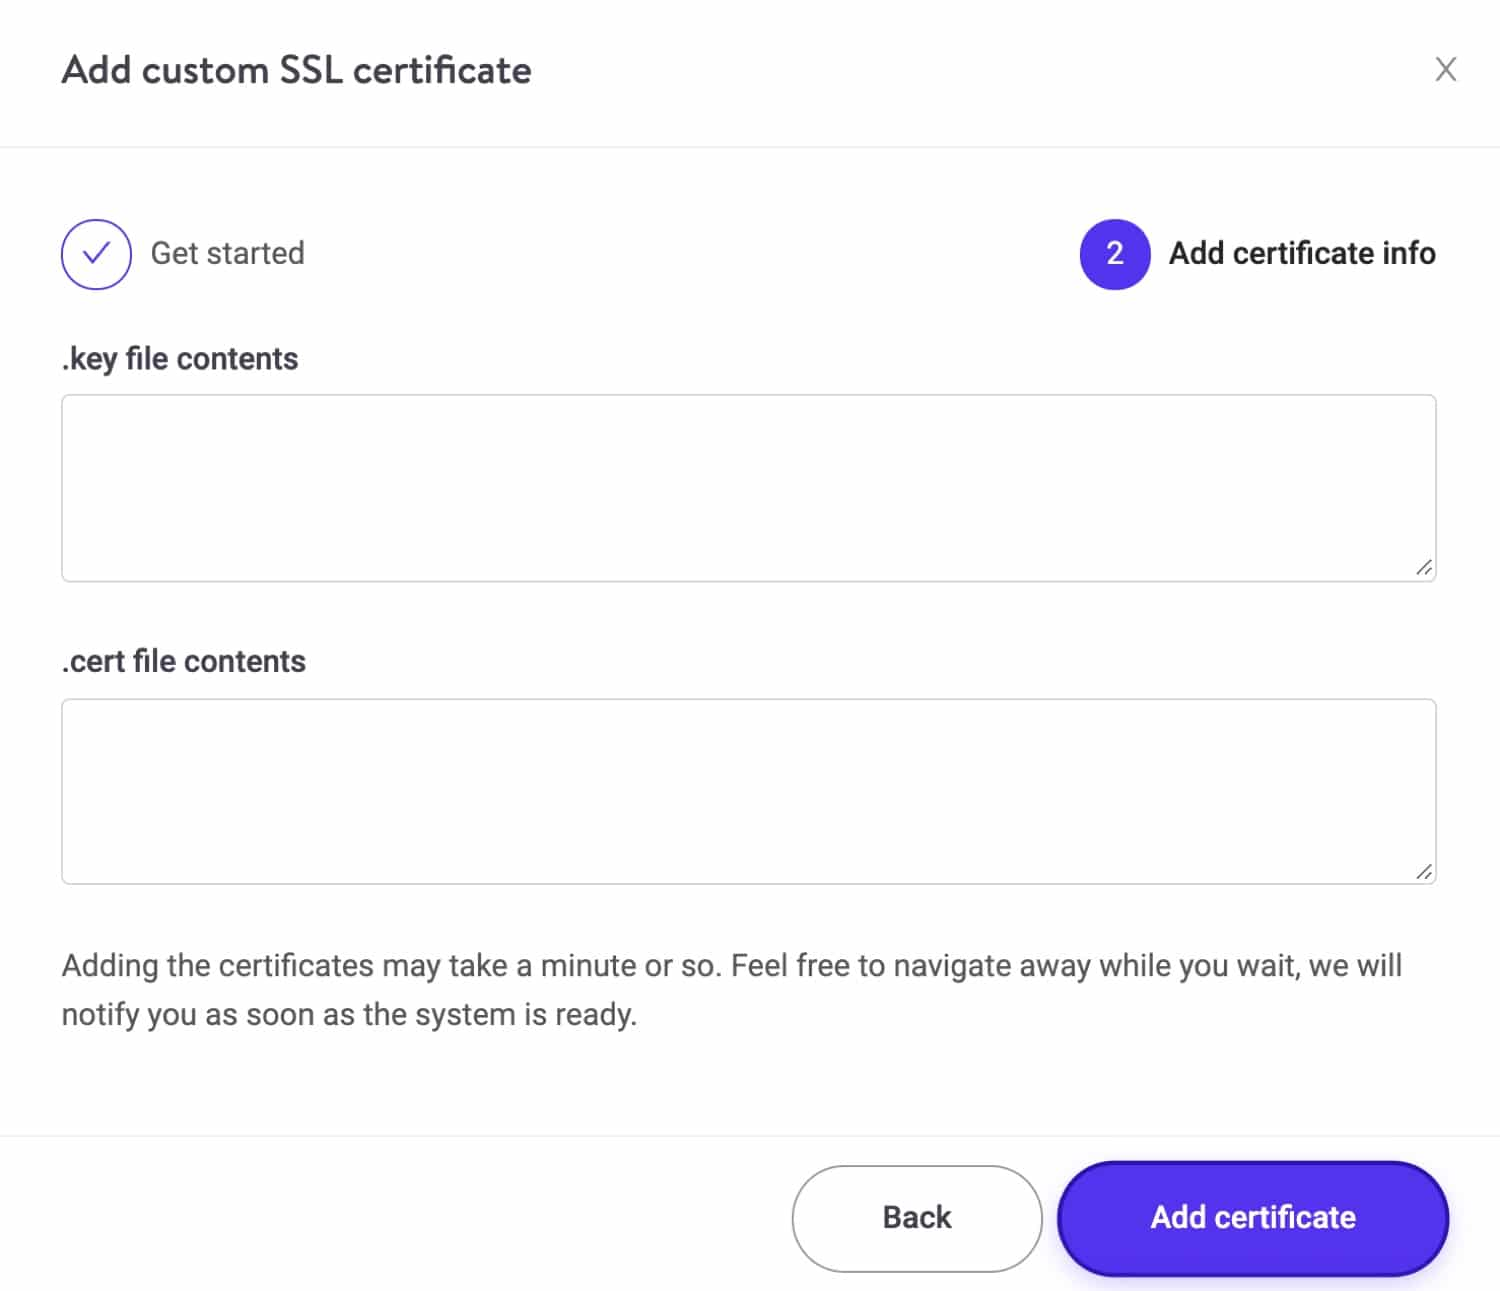 Add custom SSL details.